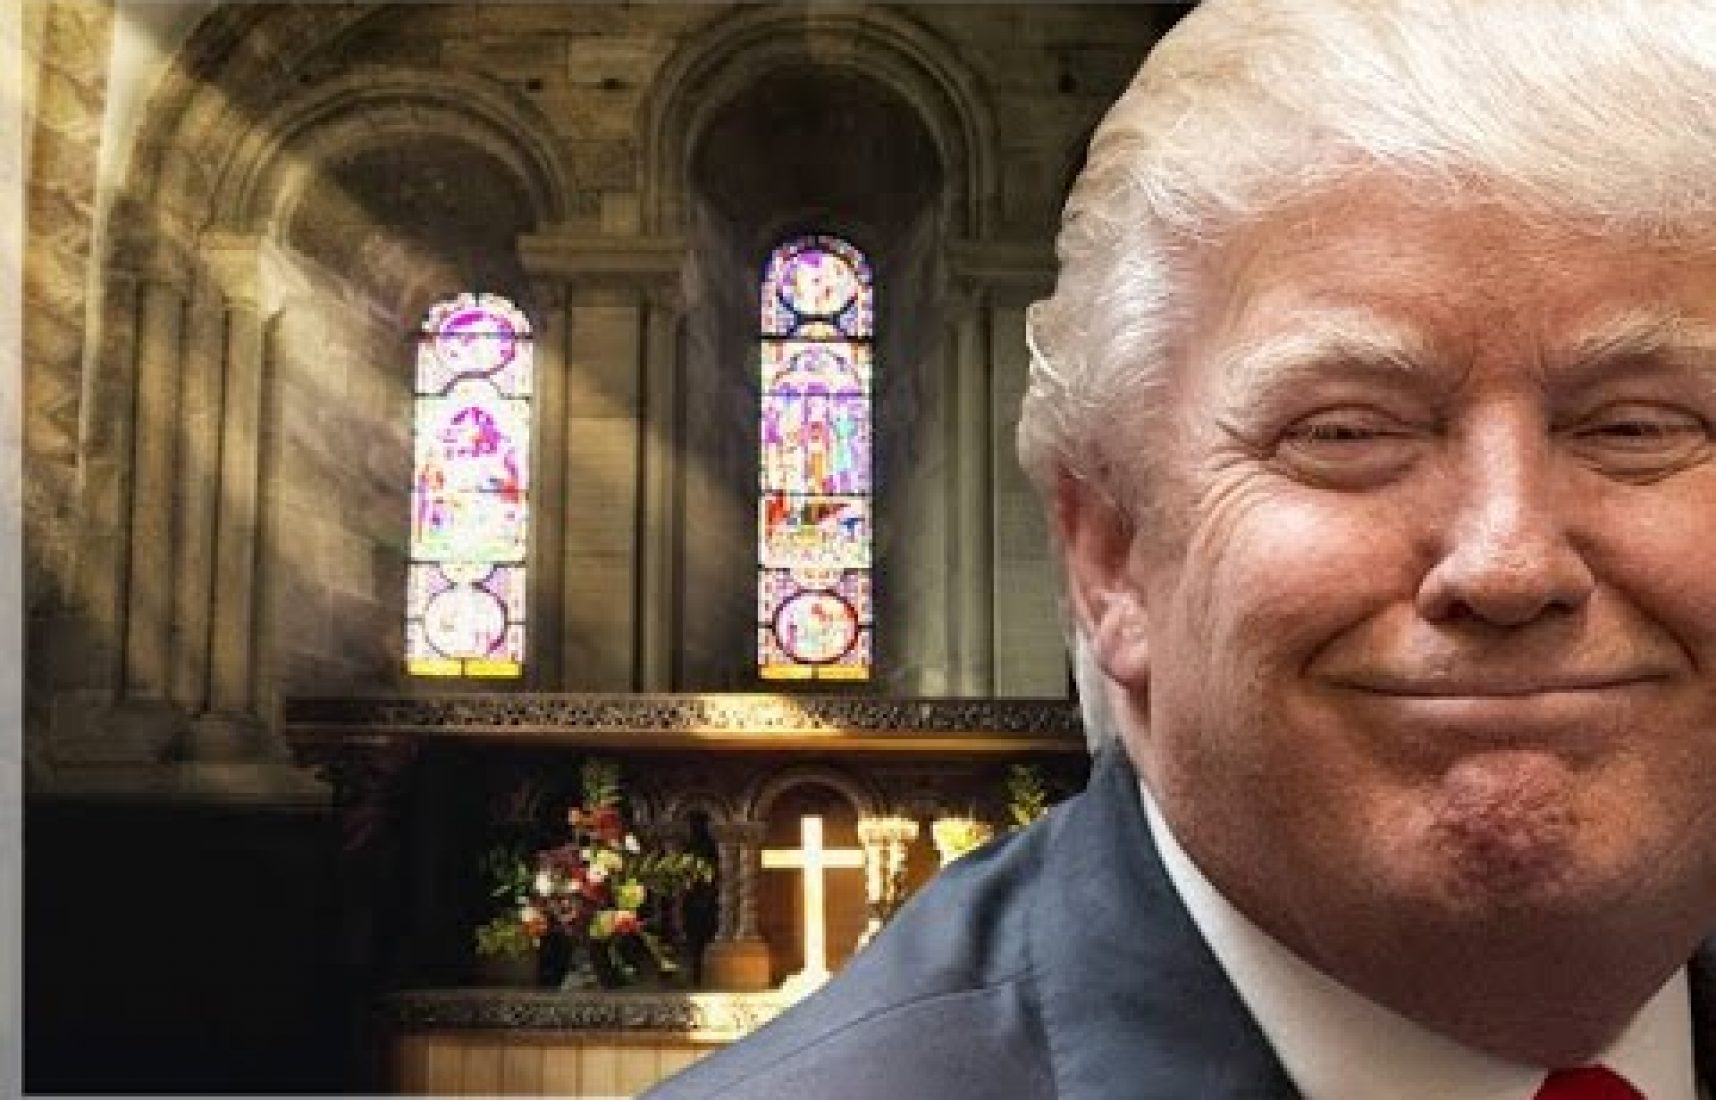 Questioning Faith with Donald Trump